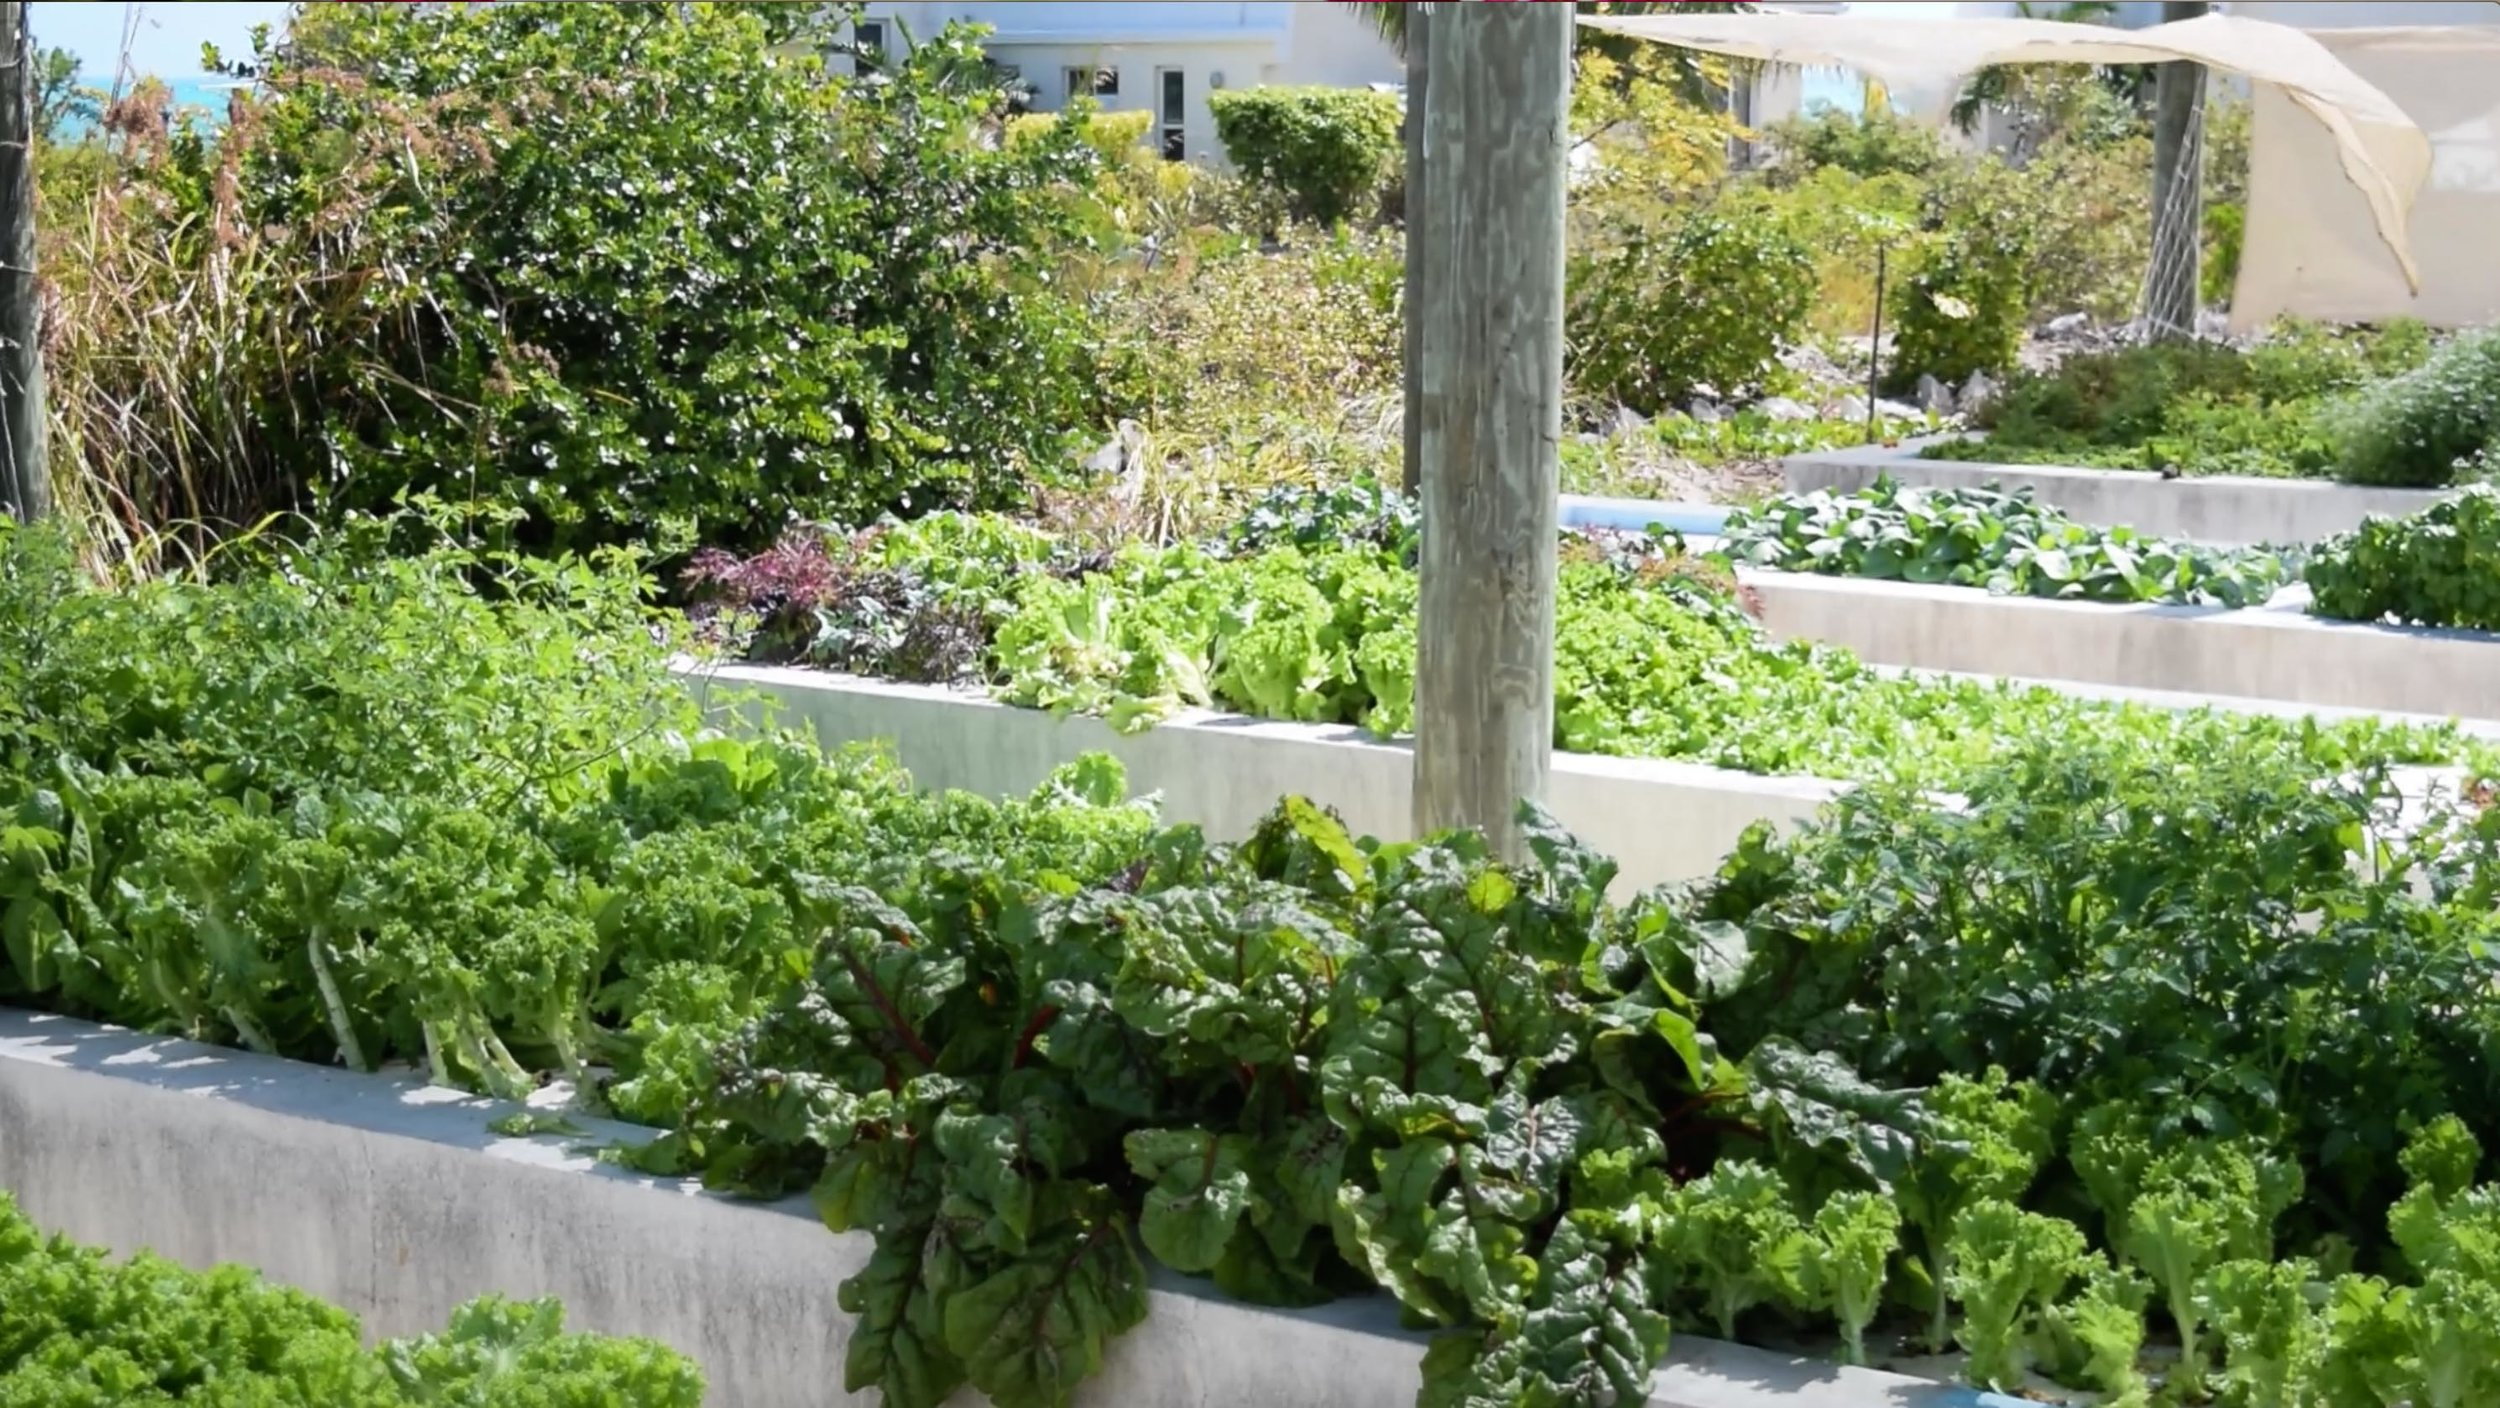 Our aquaponics system provides our dining hall with a variety of delicious vegetables to enjoy!